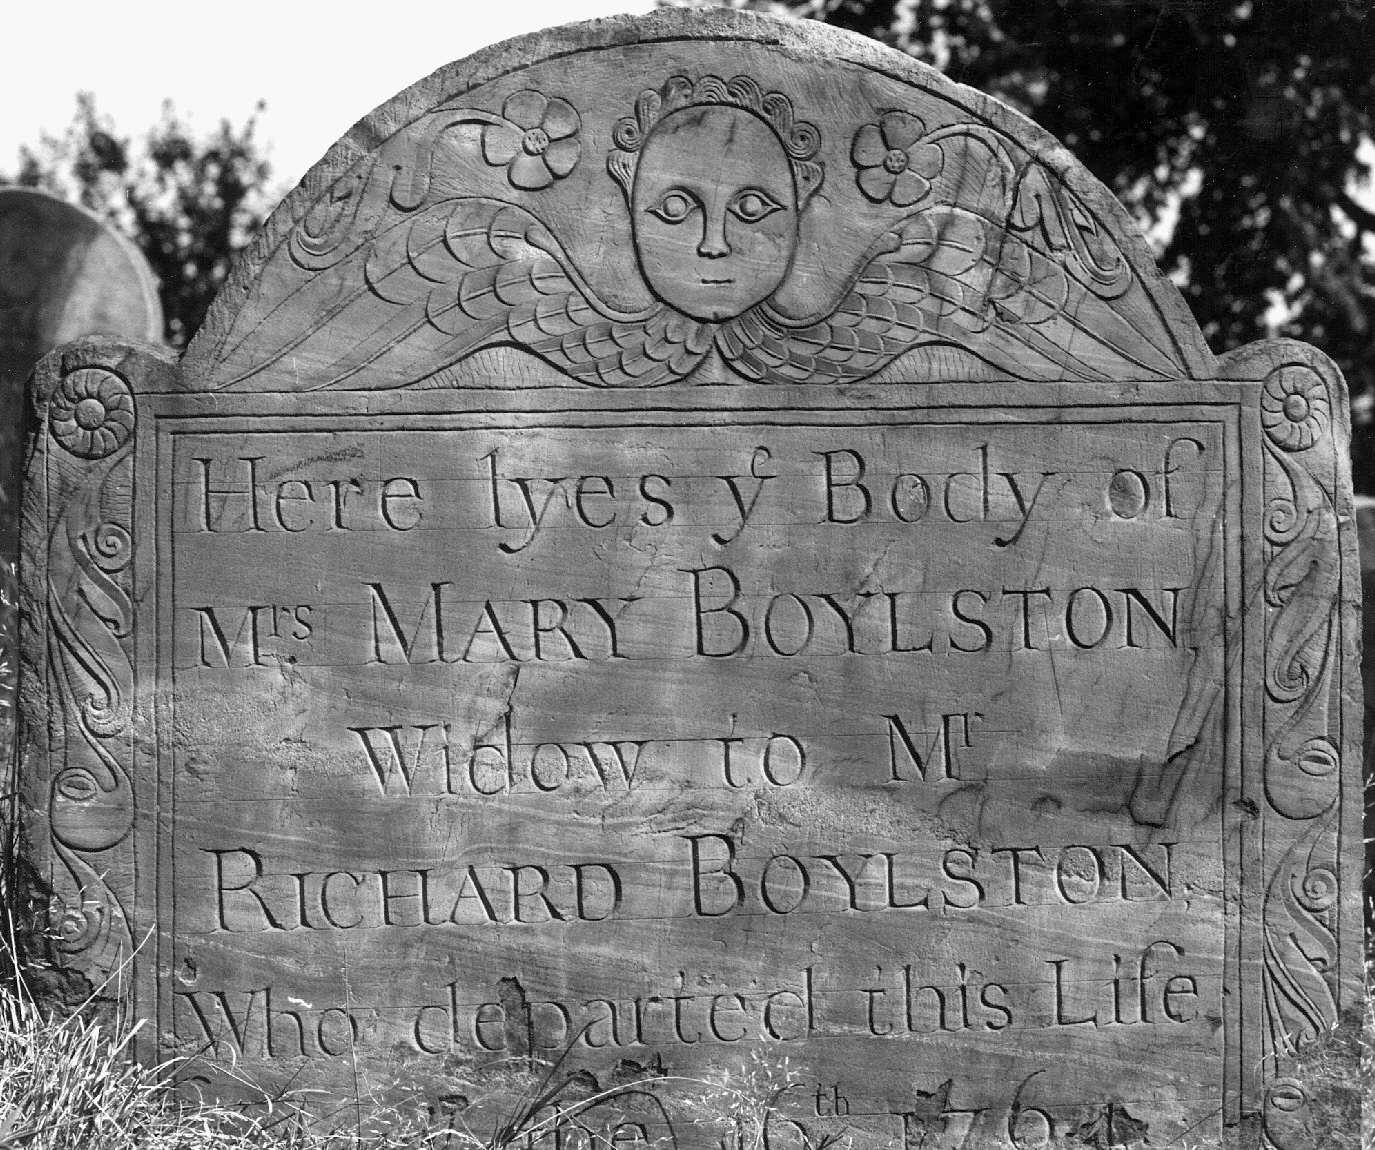 Boylston, Mary